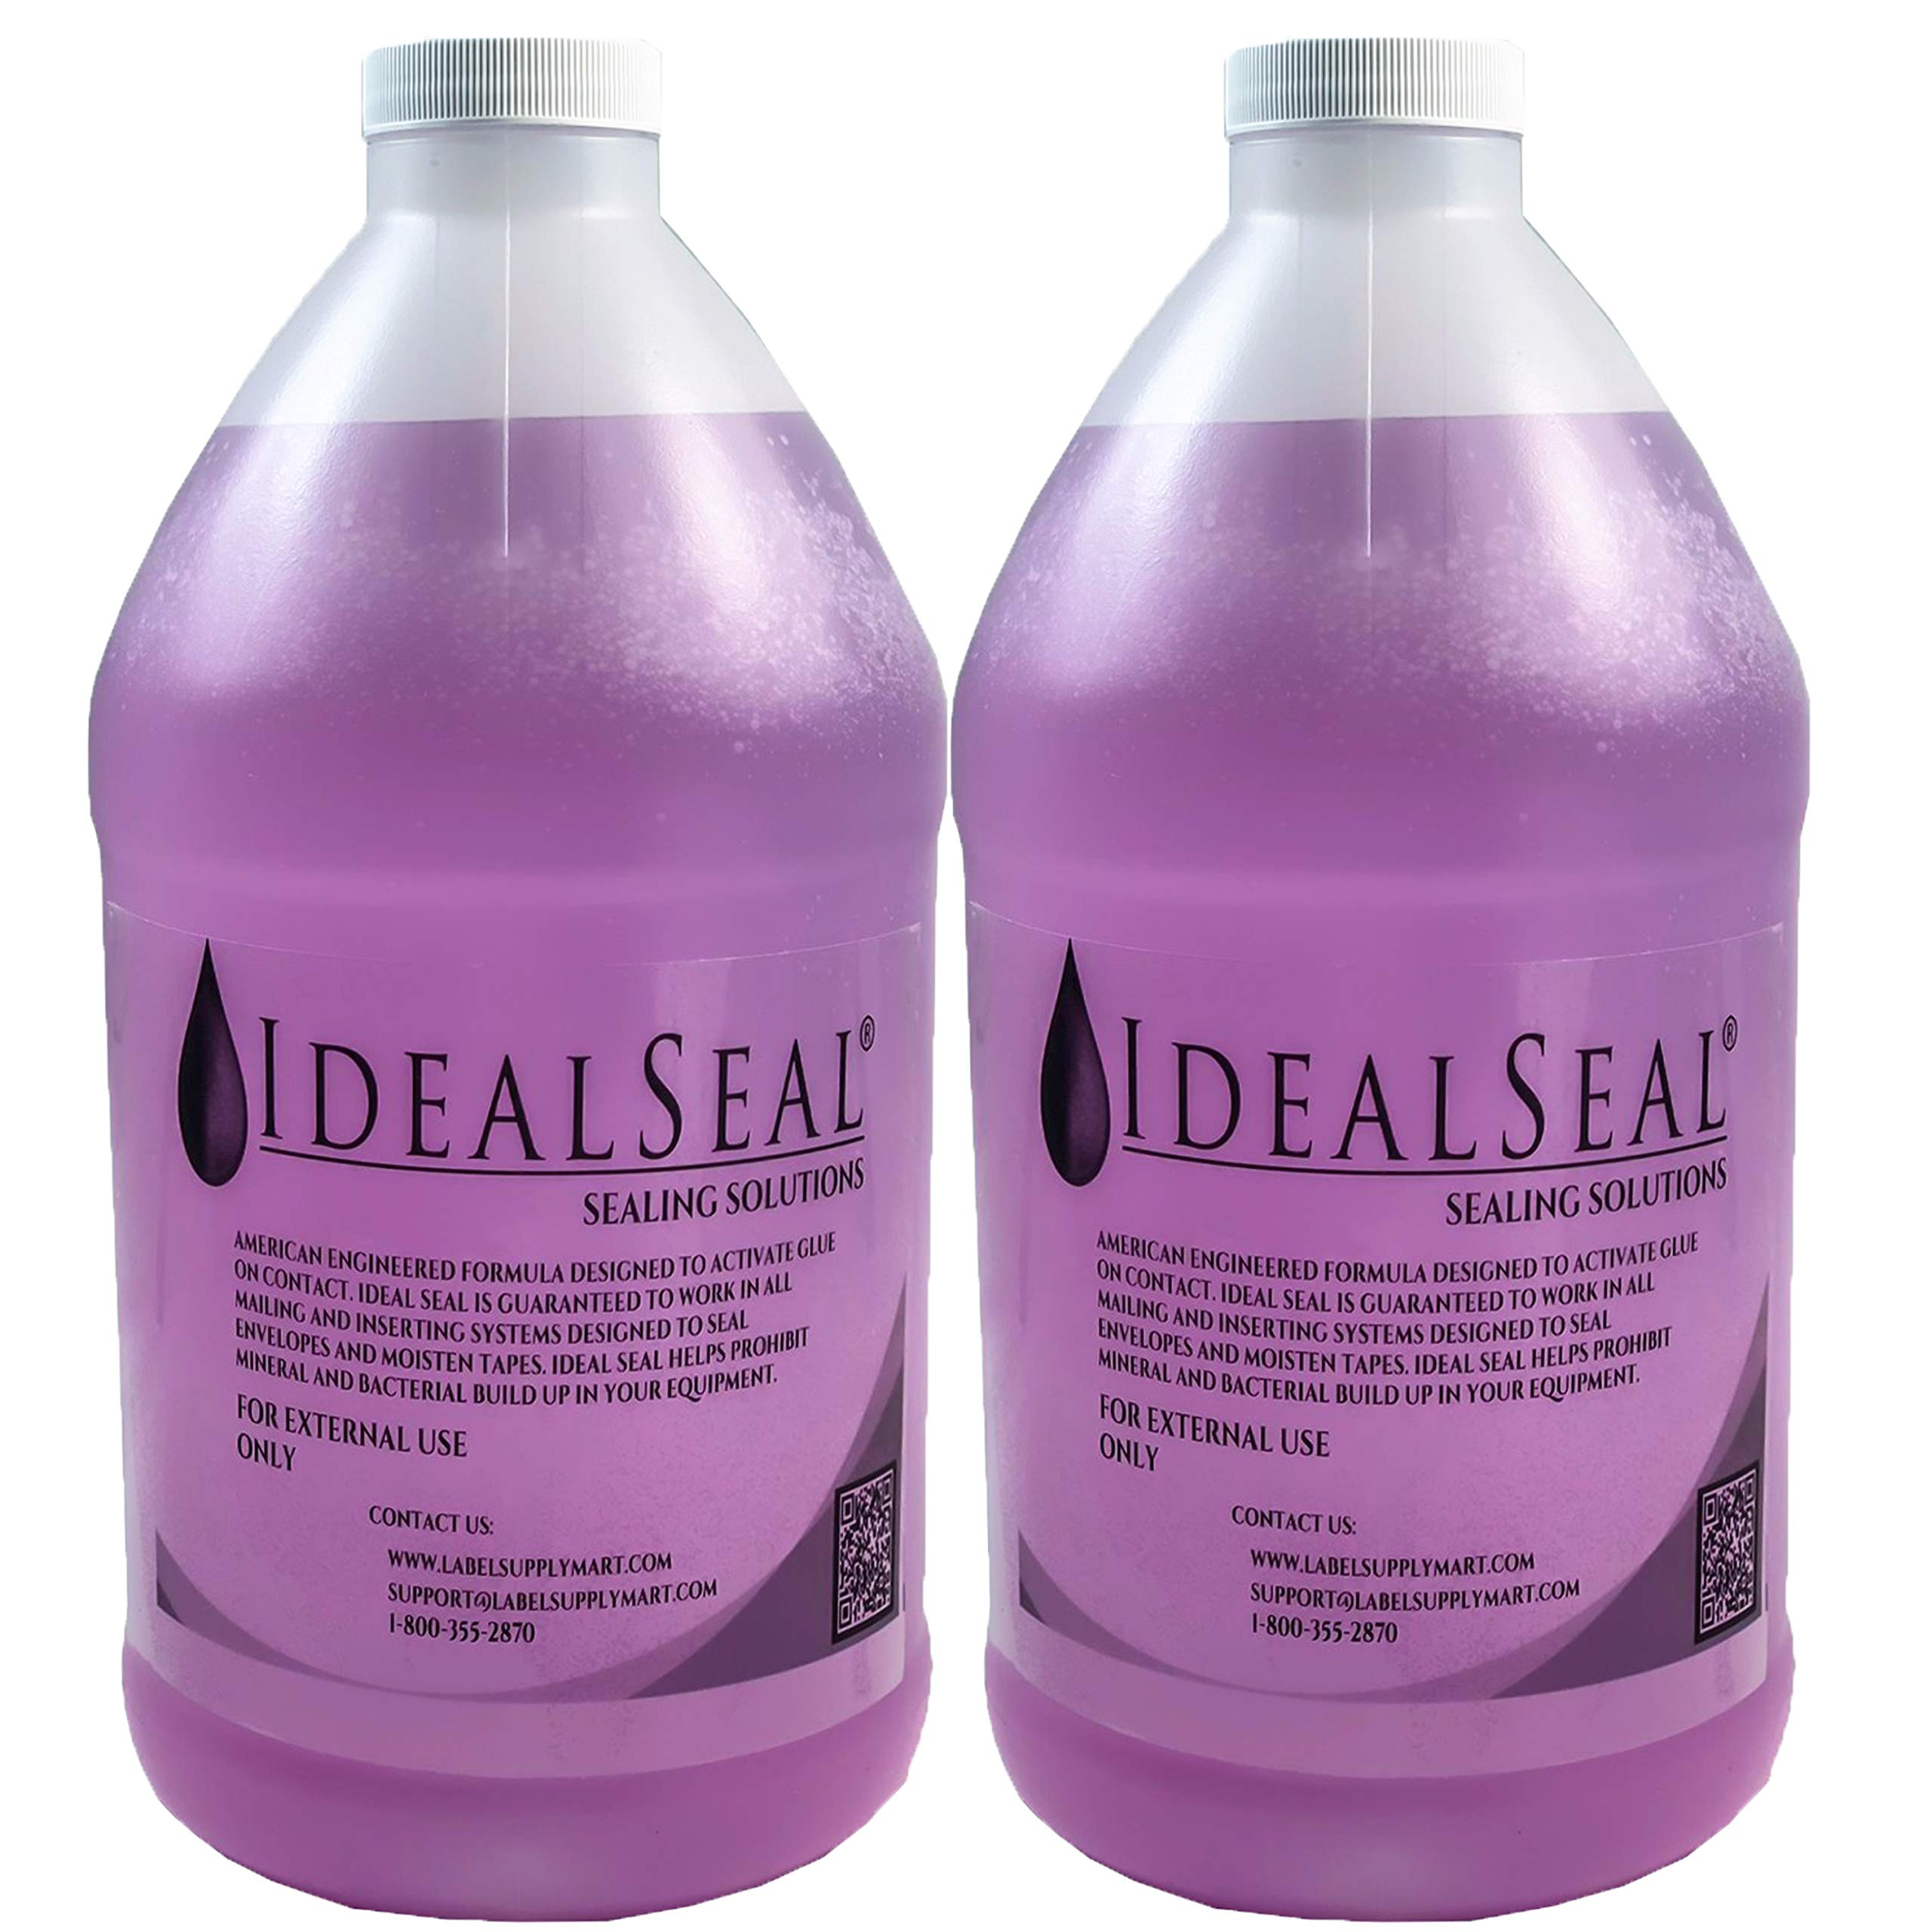 Pitney Bowes 608-0 E-Z Seal Sealing Solution Genuine Compatible IDEALSEAL Half Gallon (64 oz) of Sealing Solution DM Series Mailing Systems (2-Half-Gallons) by IDEALSEAL